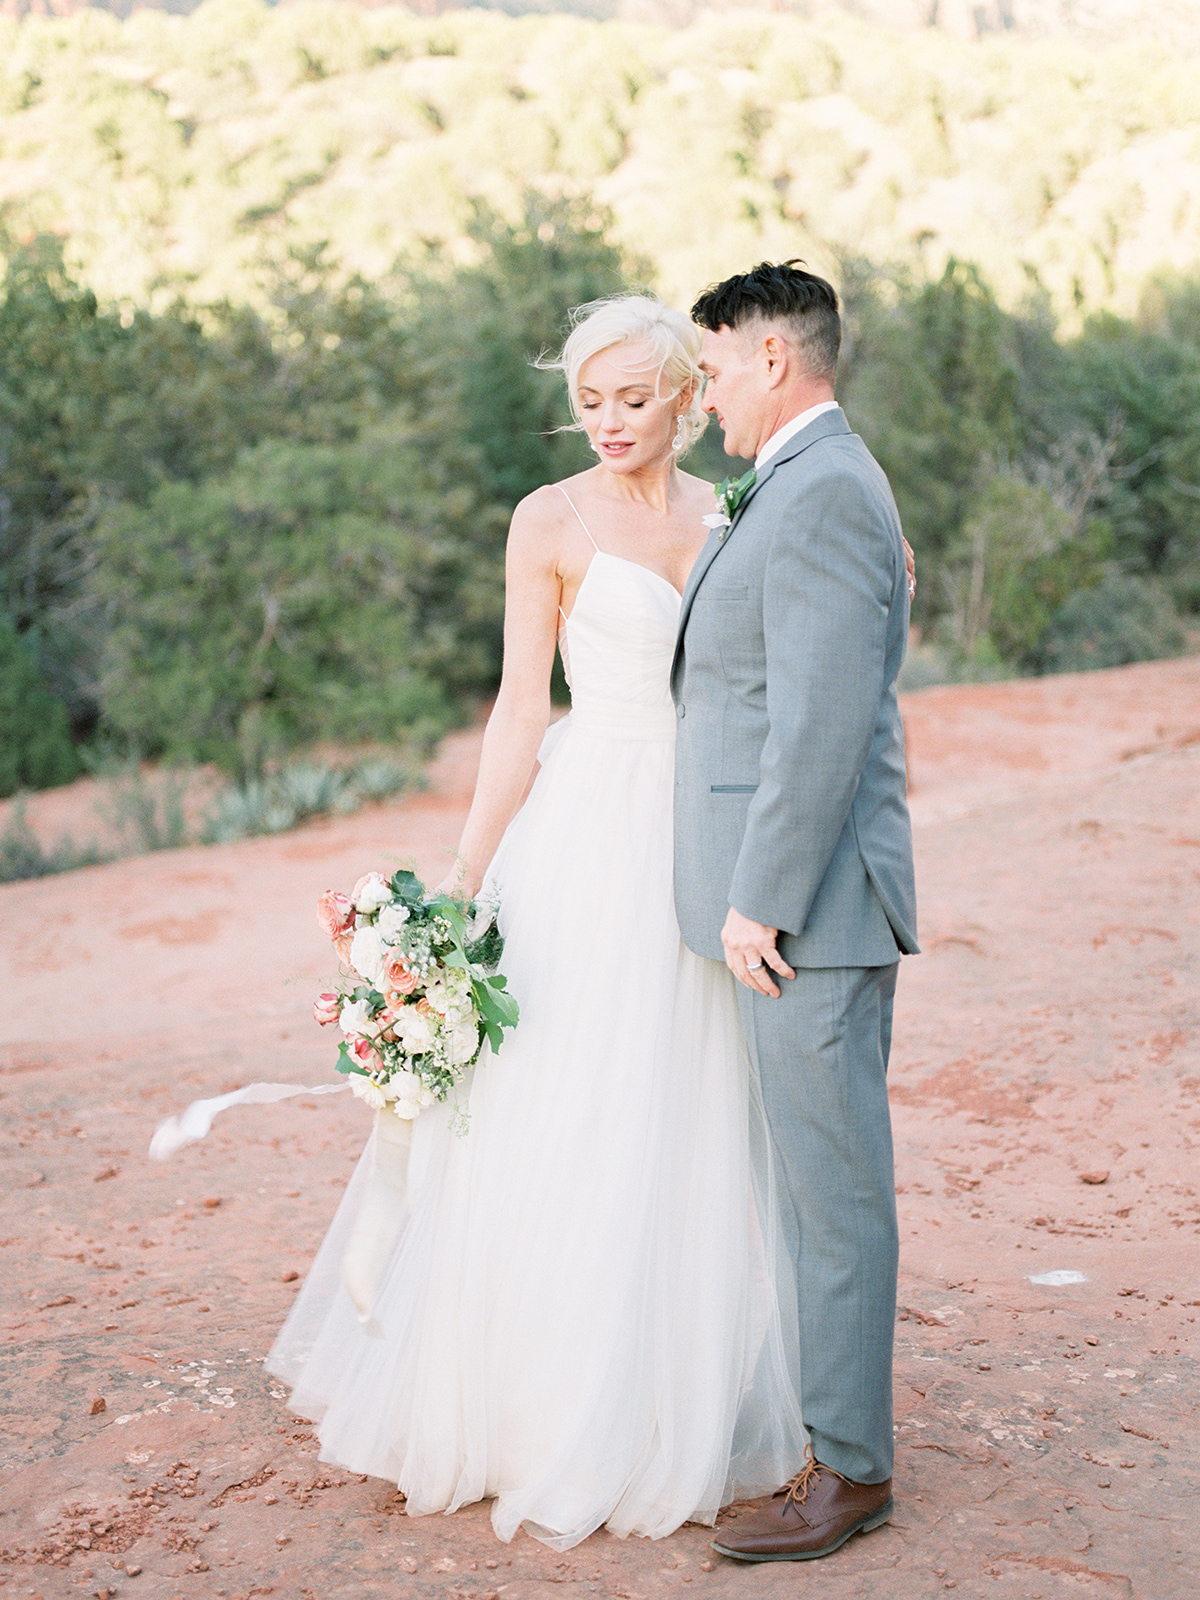 York Sedona Elopement - Ball Photo Co Fine Art Film Wedding Photography-184.jpg